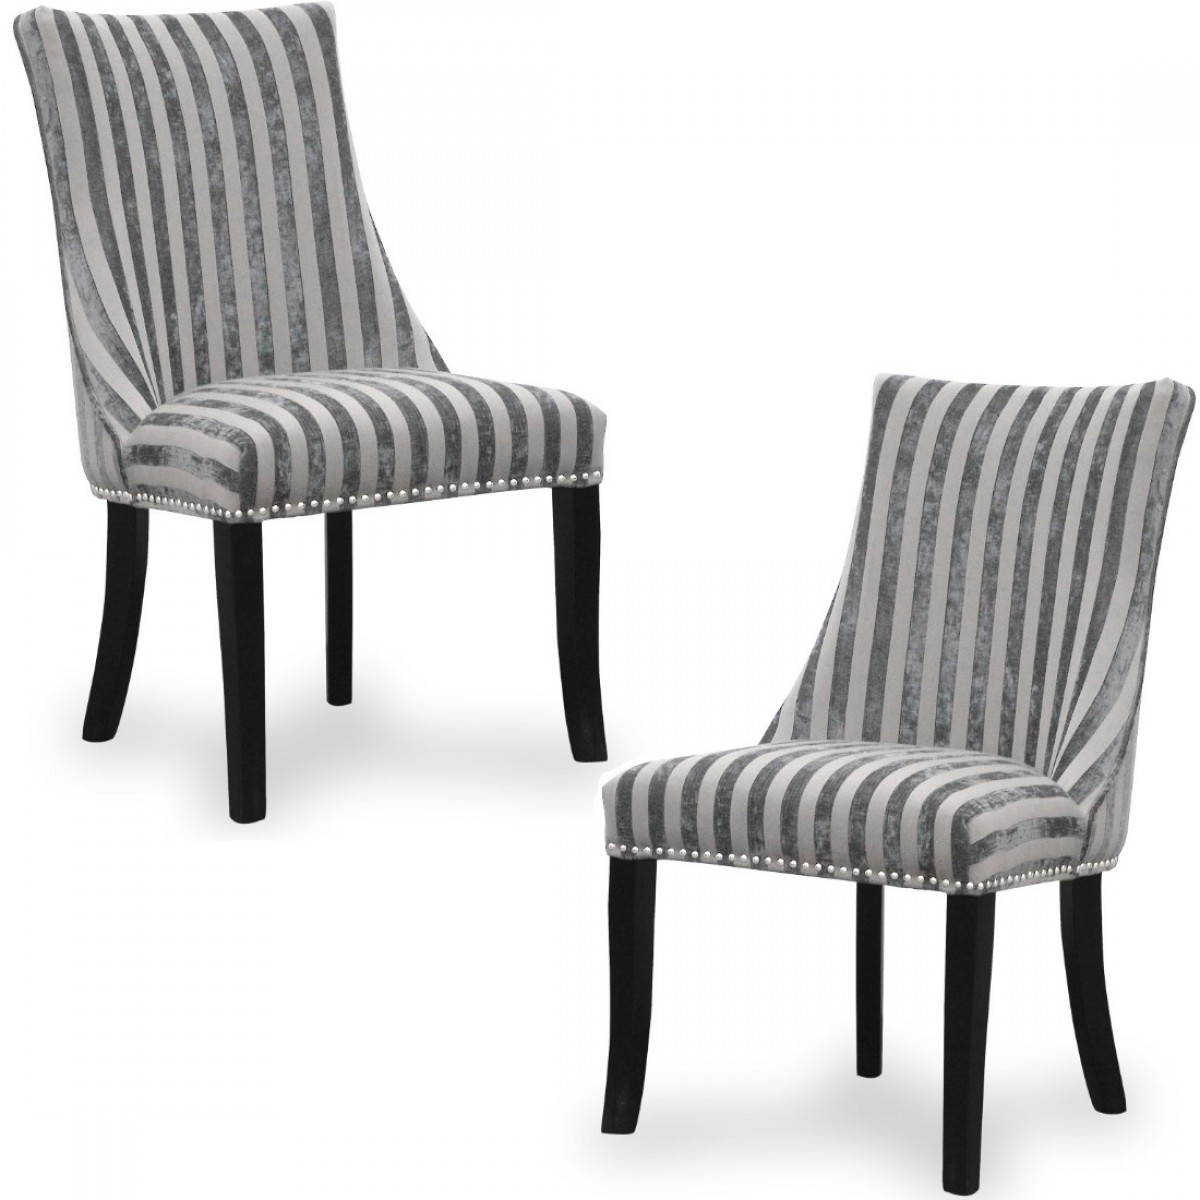 Accent Chairs.Dining Chair Pair Of Shankar Balmoral Mink Stripe Accent Chairs 090 42 02 01 03